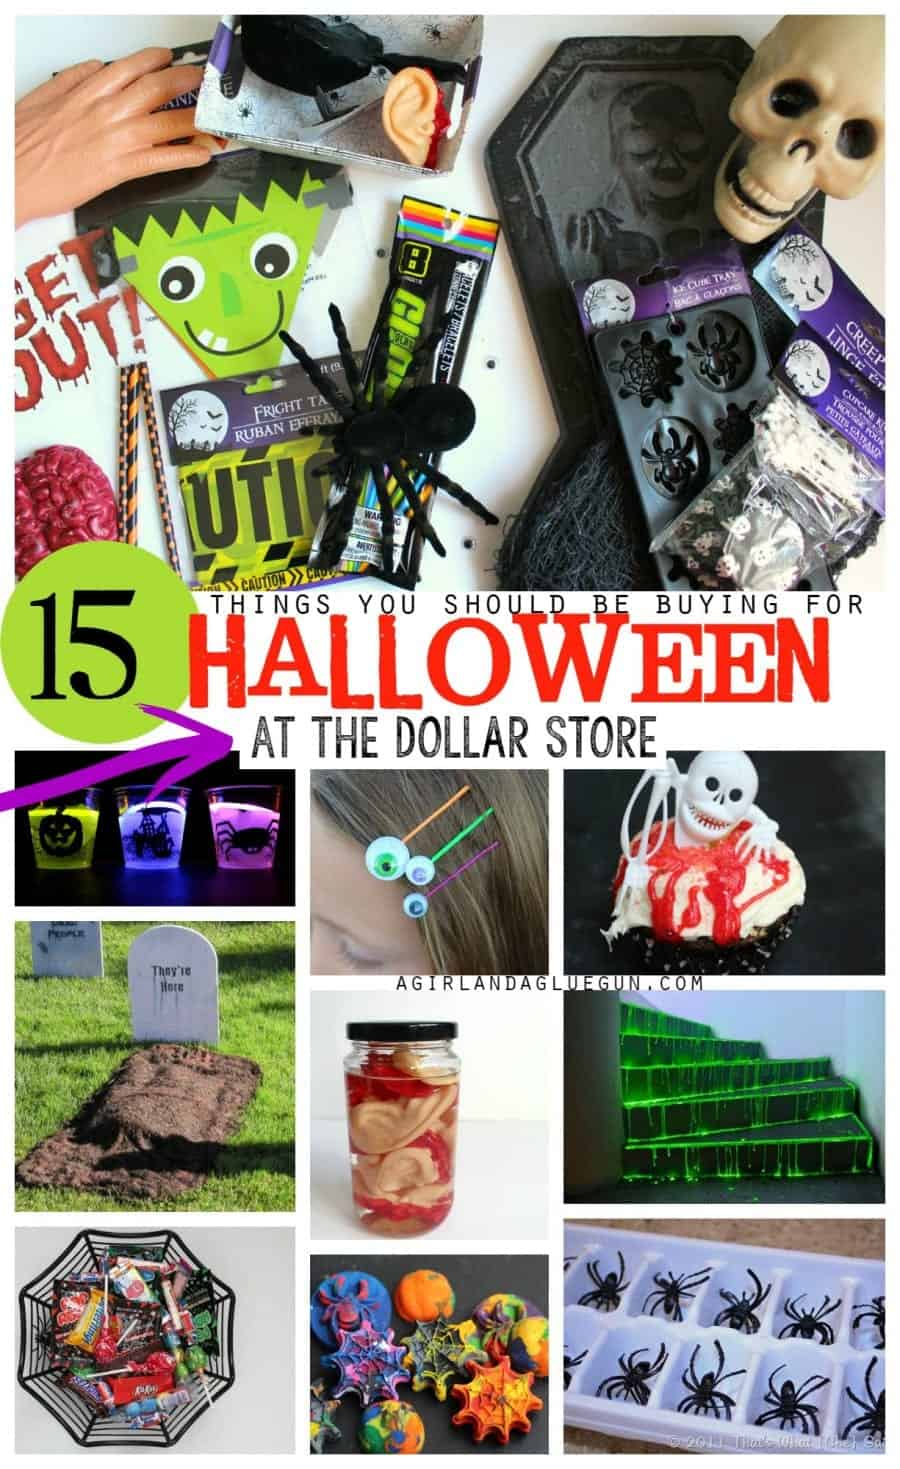 15 things you should be buying for Halloween at the dollar store